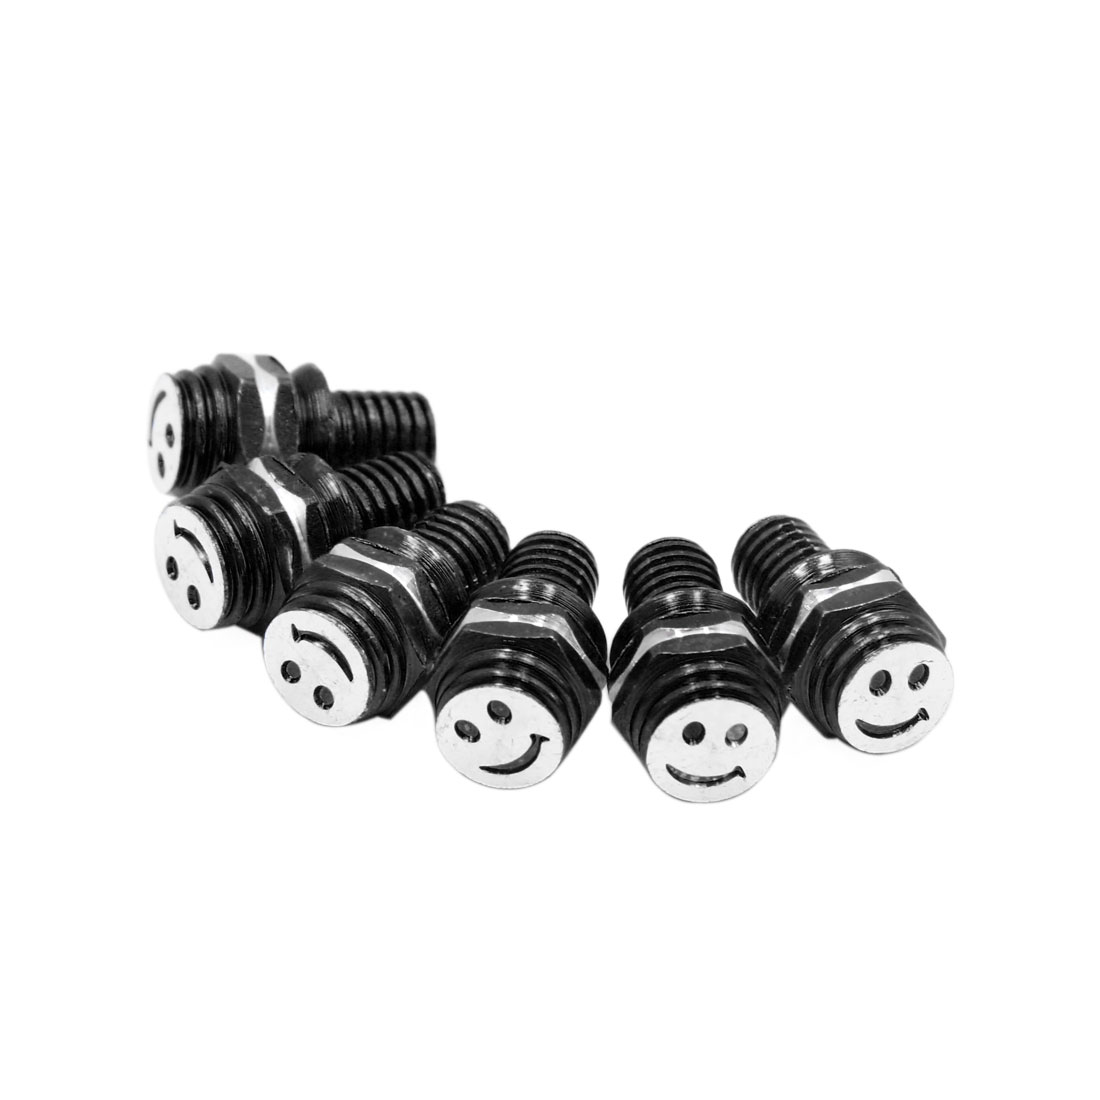 6pcs Black 8mm Thread Diameter Smiling Face Pattern Motorcycle License Plate Bolt Screws